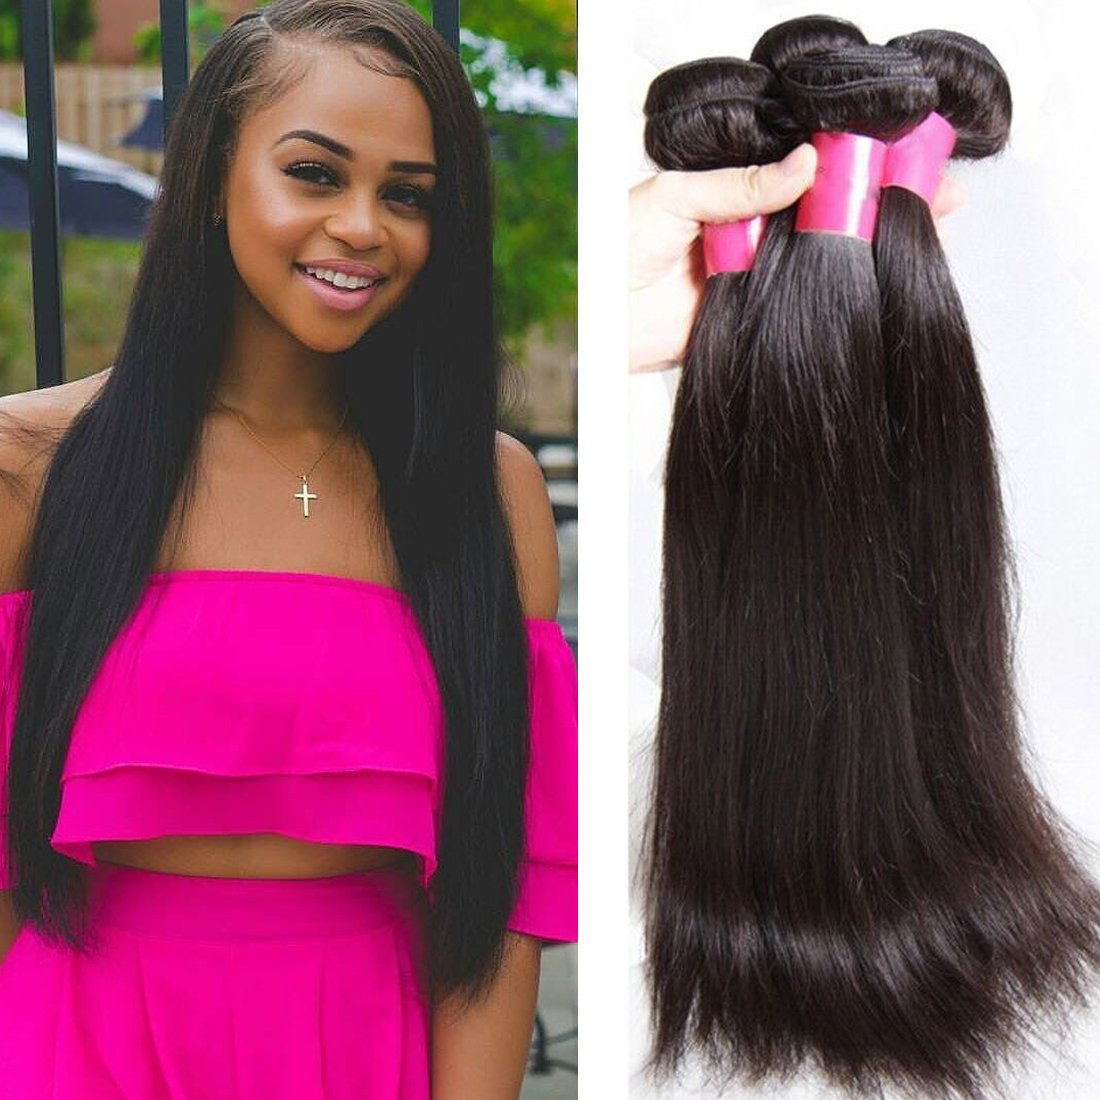 YIROO Brazilian Virgin Straight Hair Weave 3 Bundles 7A 100% Unprocessed  Brazilian Virgin Human Hair e16107d32e